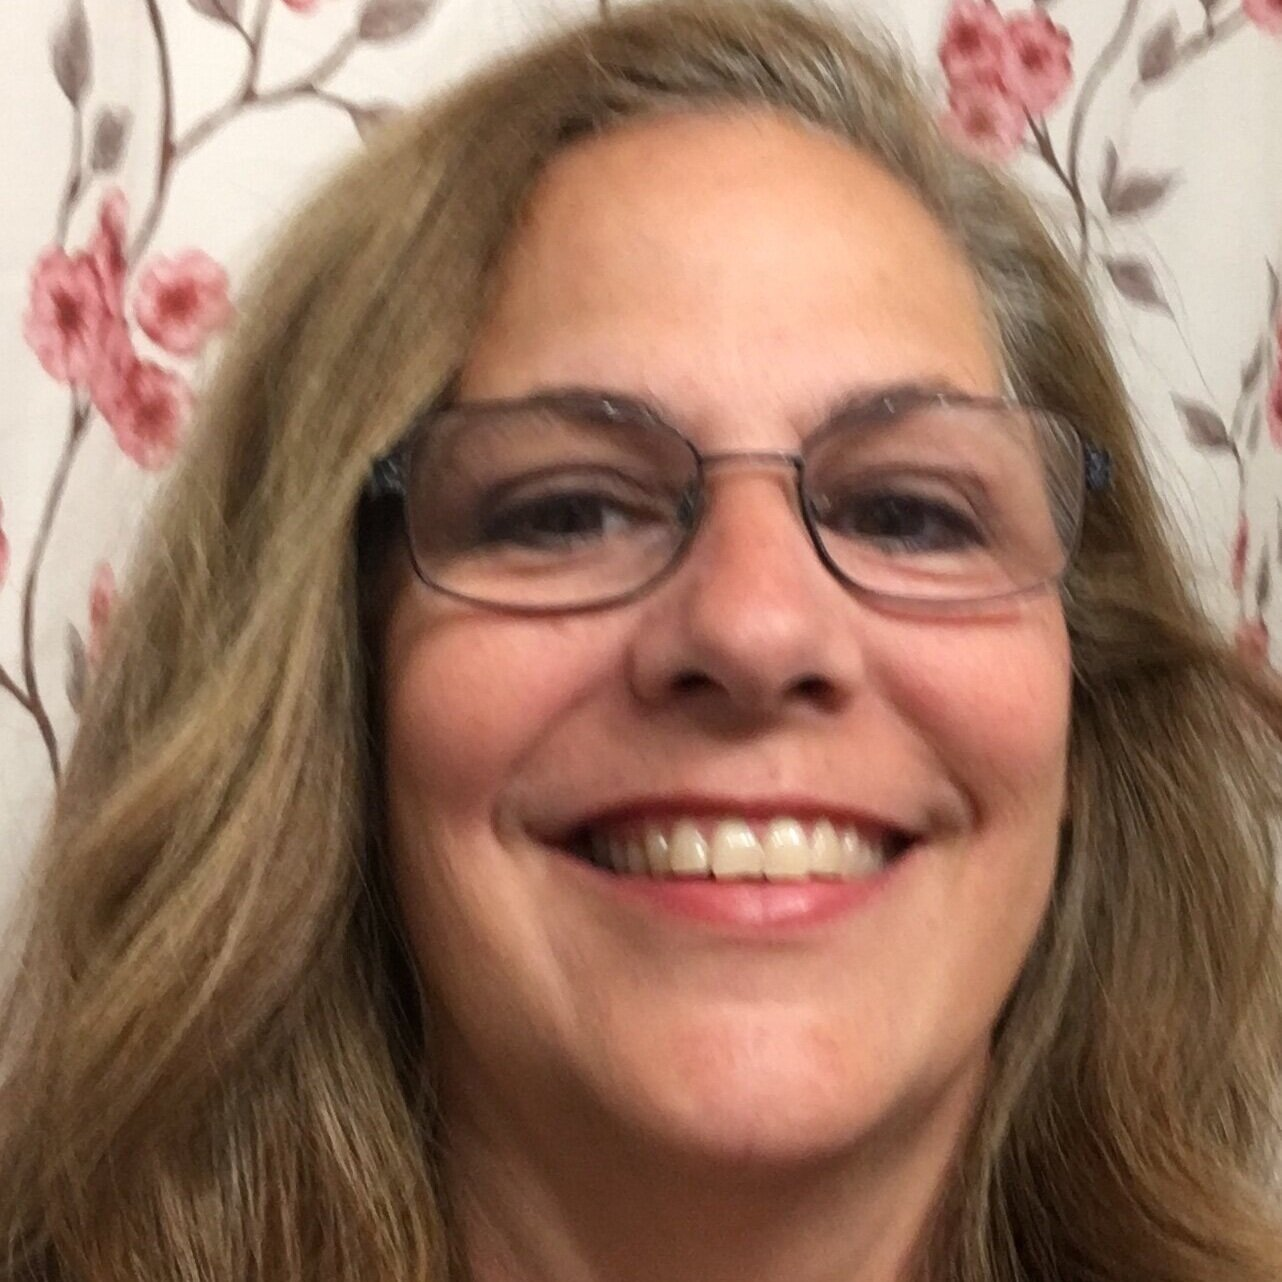 Lora Templin - RANK: EXECUTIVELora is a Christian, a wife, a mom and a Mimi. She has a heart for helping others. She is passionate about sharing her love of God and oils with others